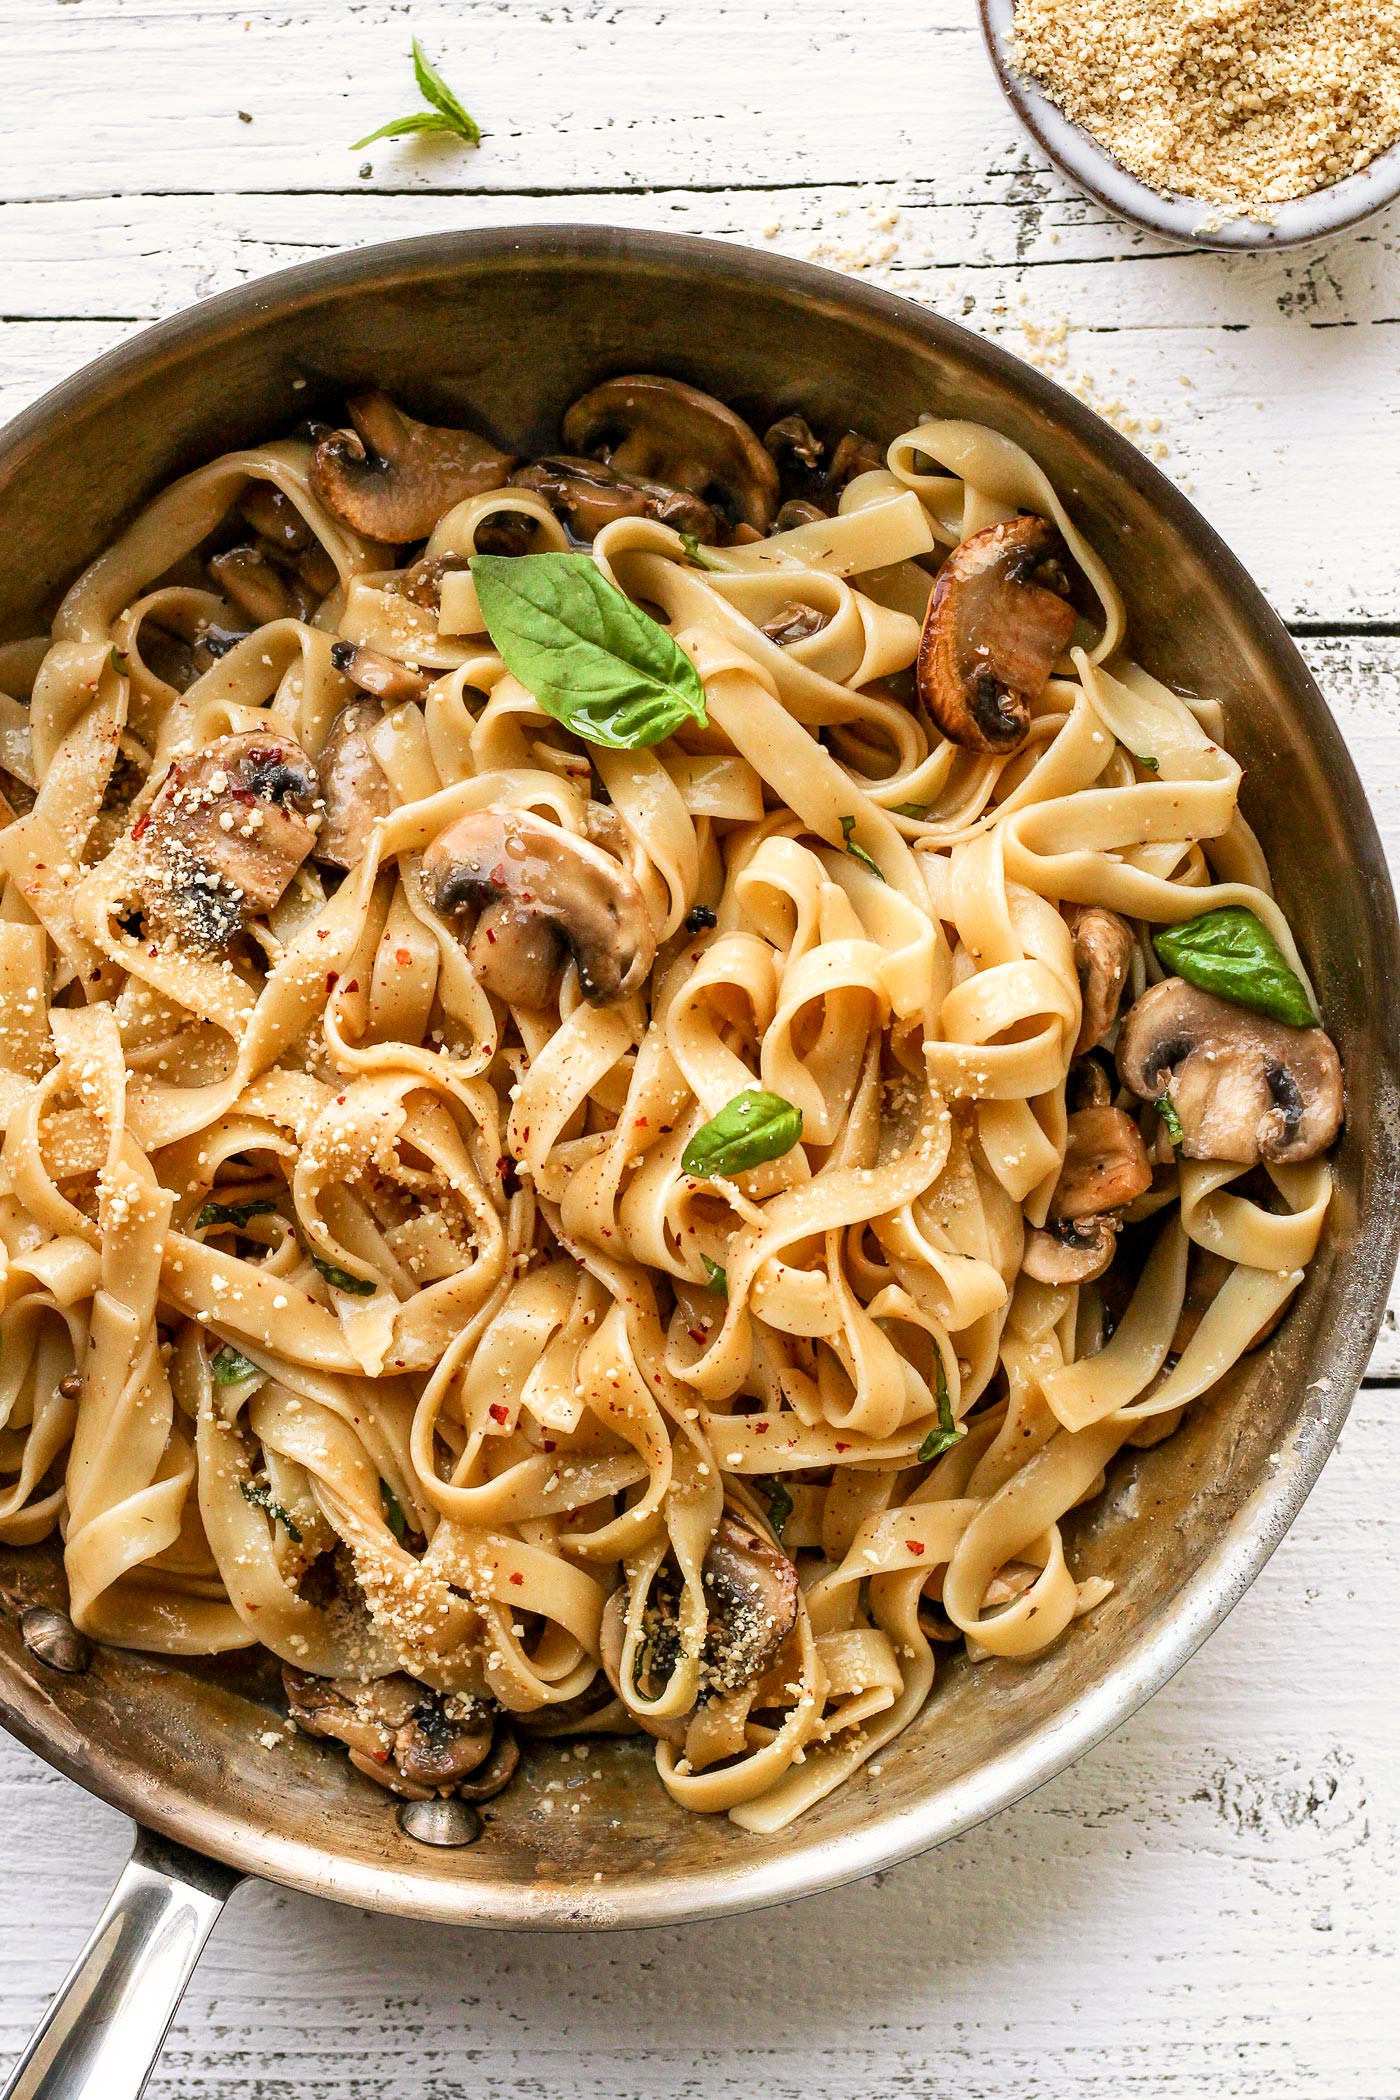 Easy Vegan Pasta Sauce  Mushroom Pasta with Creamy Peppercorn Sauce Full of Plants